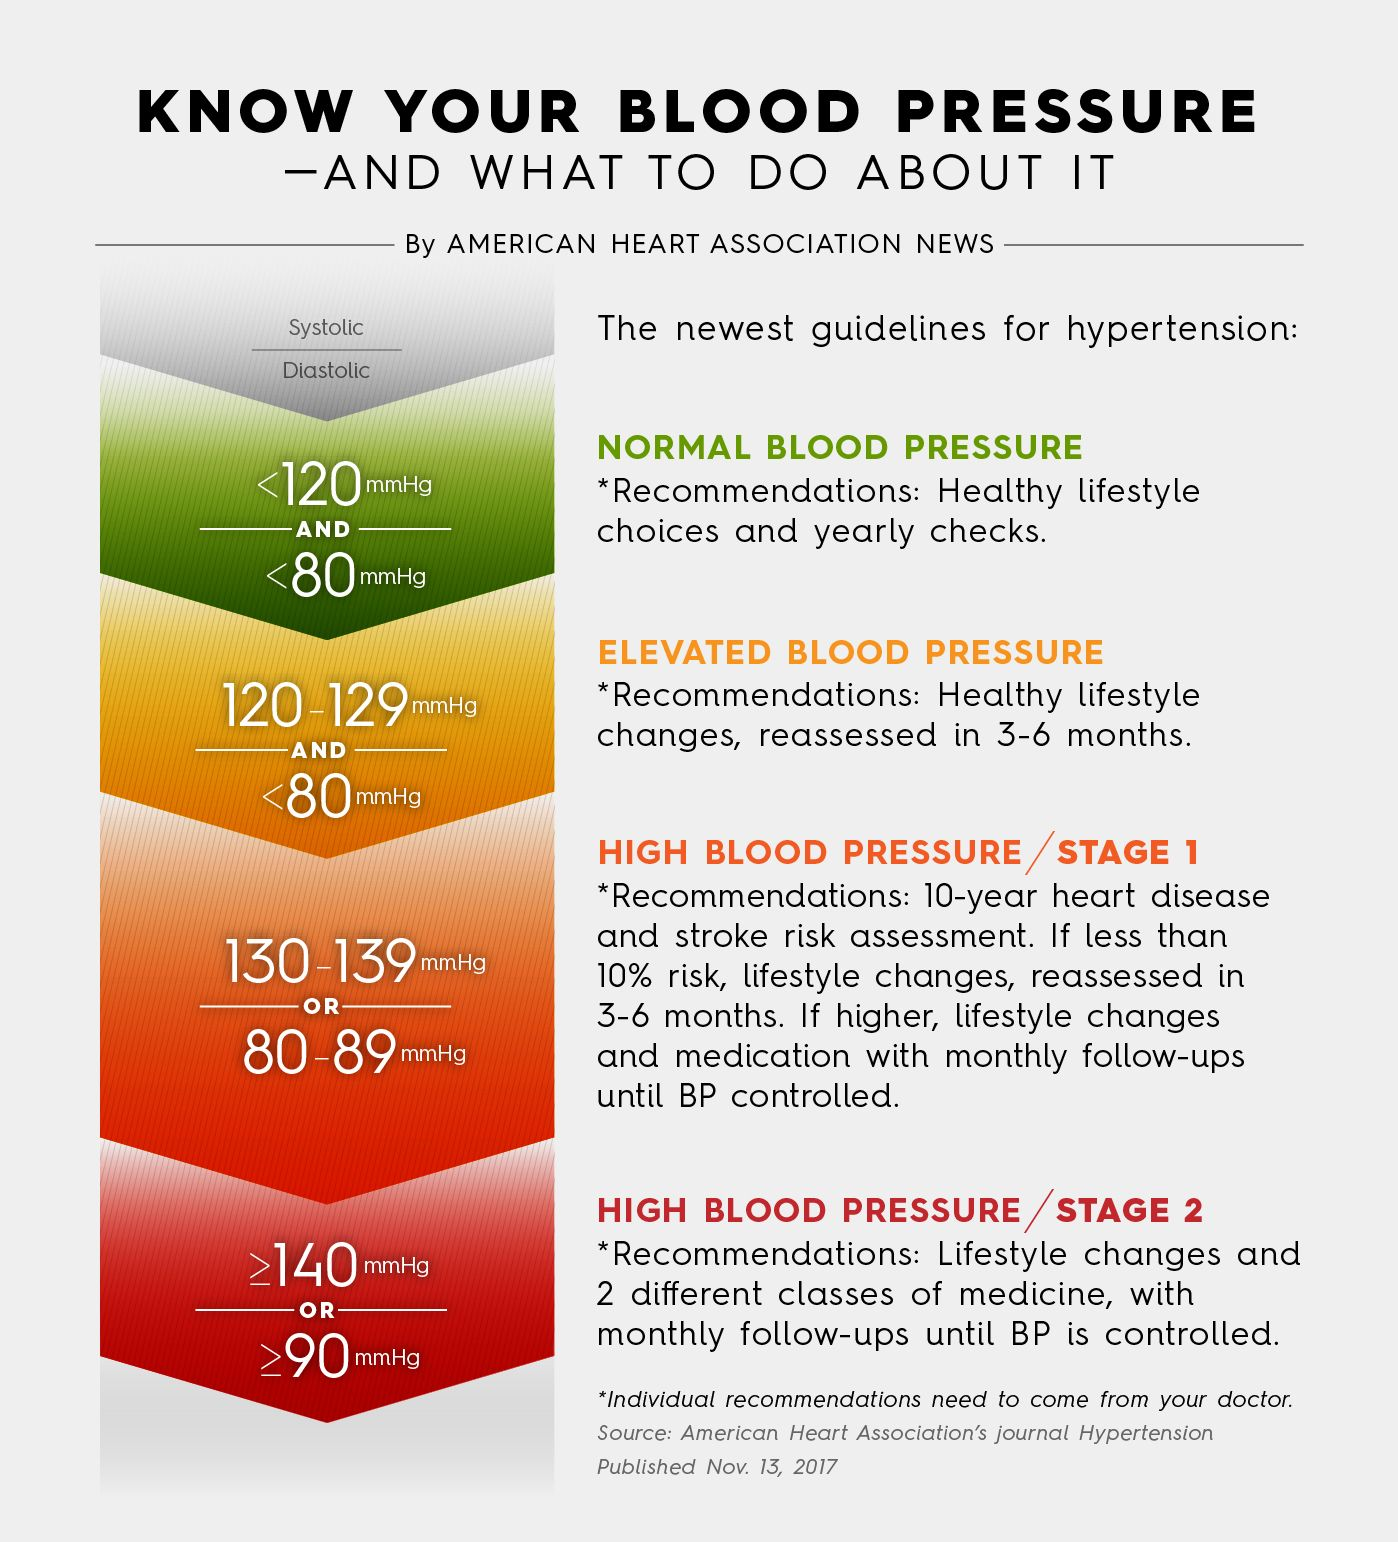 Half of U.S. adults have high blood pressure in new rules